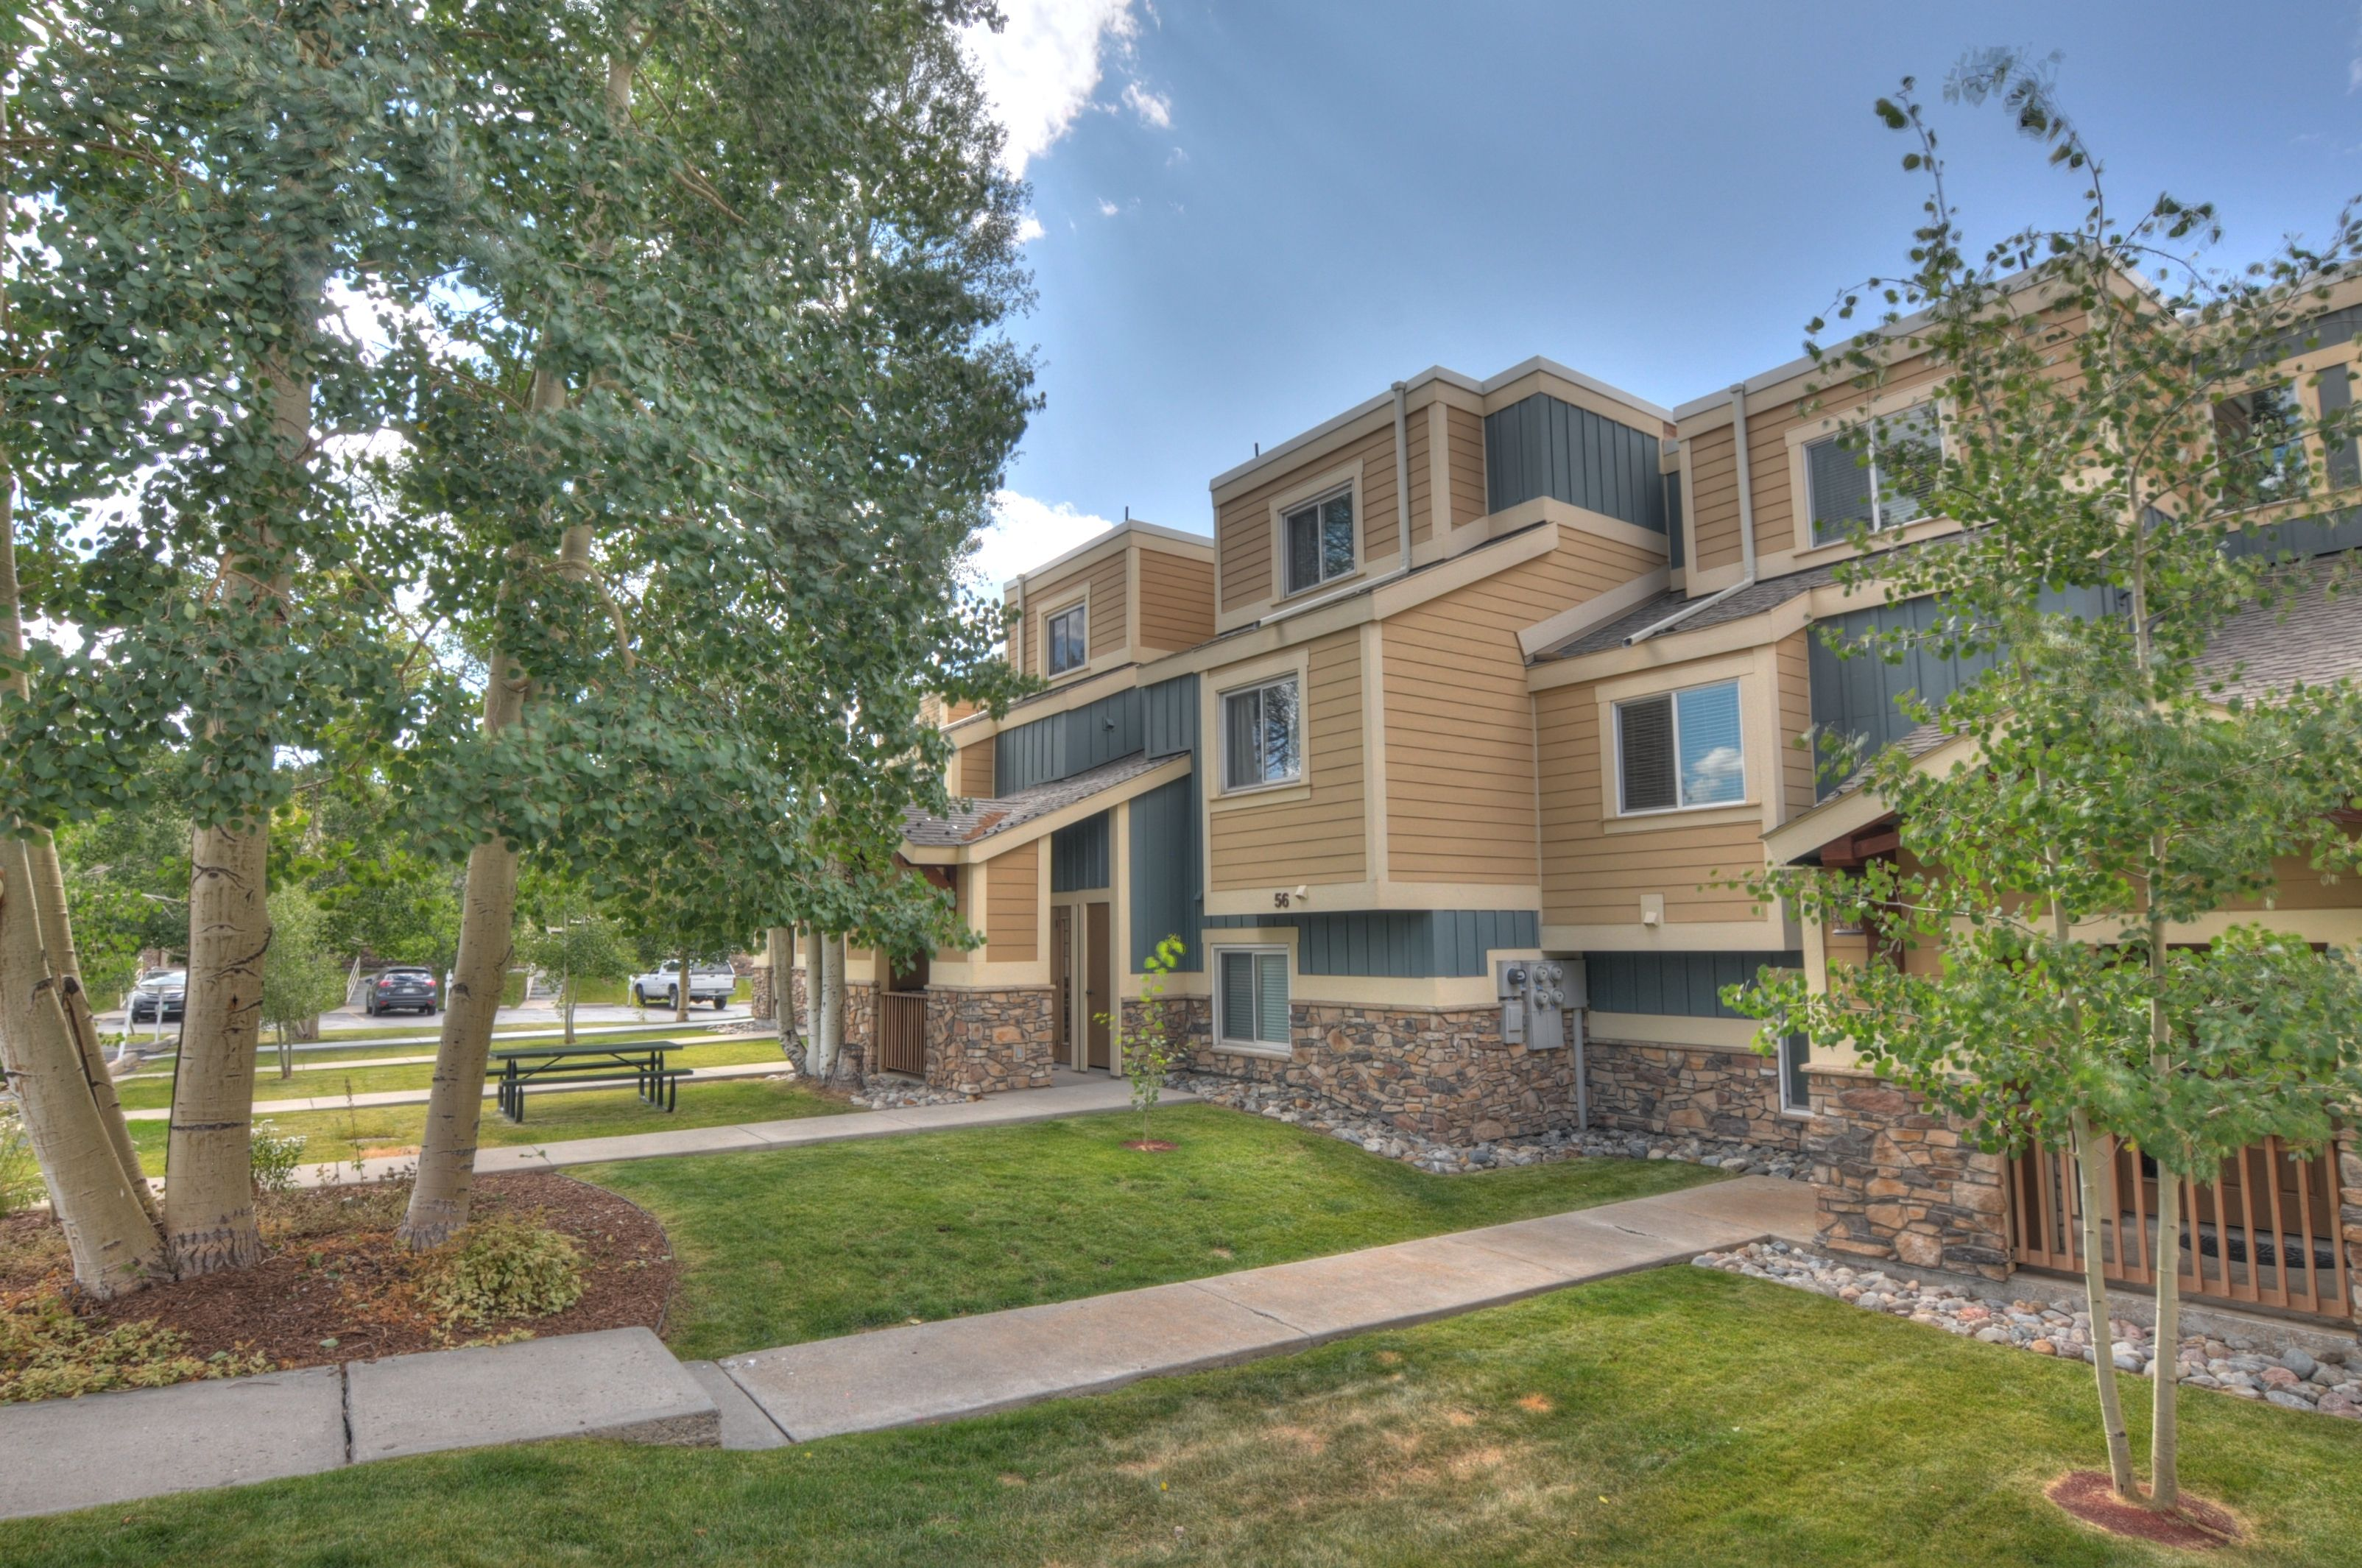 56 Cove BOULEVARD # F-7 DILLON, Colorado 80435